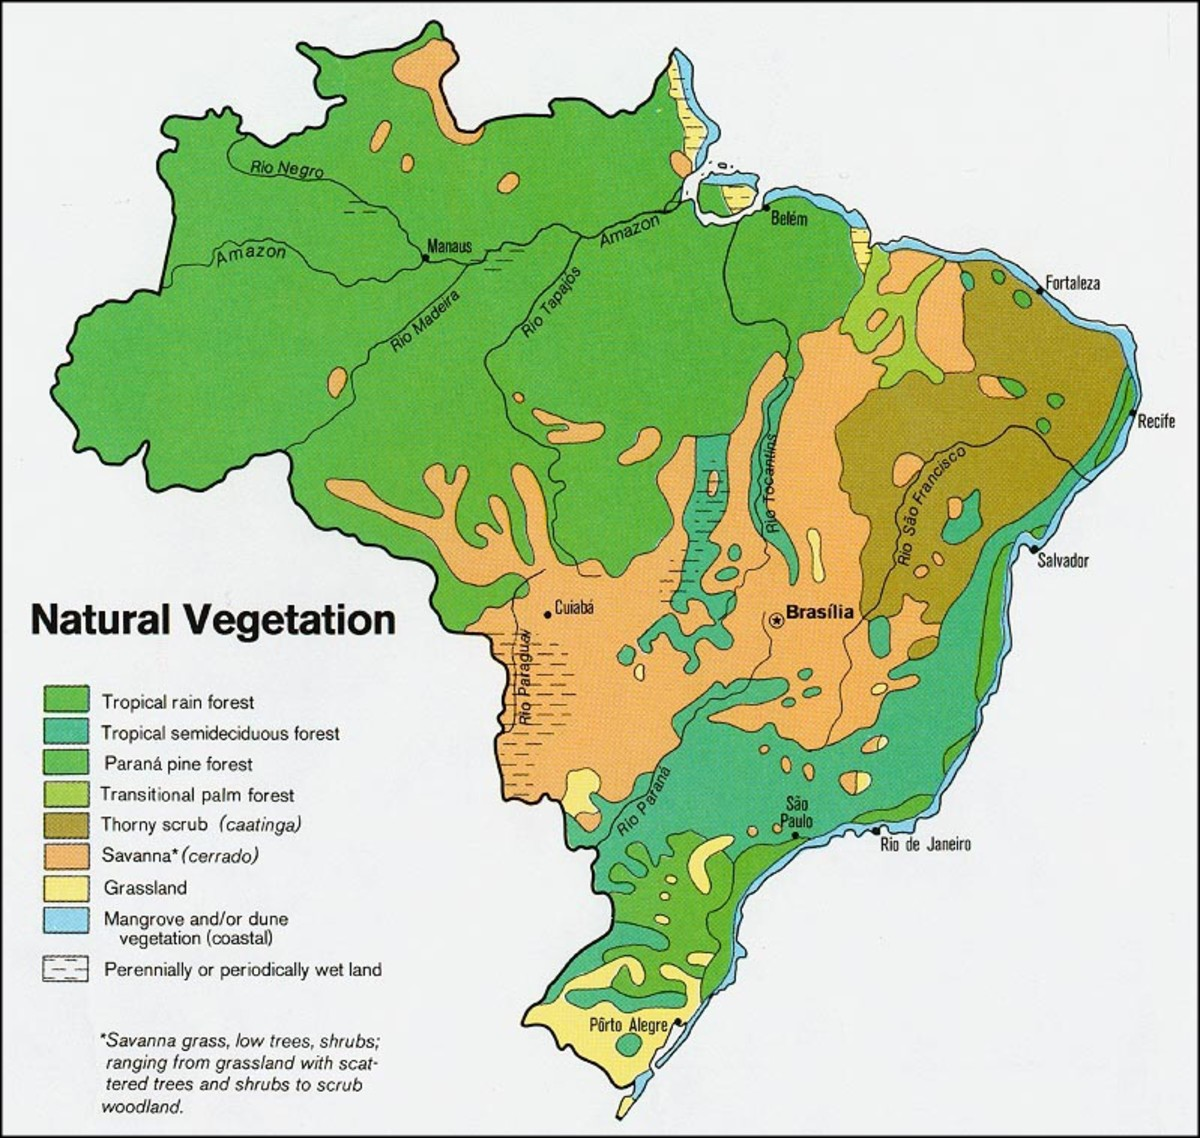 Vegetation in Brazil